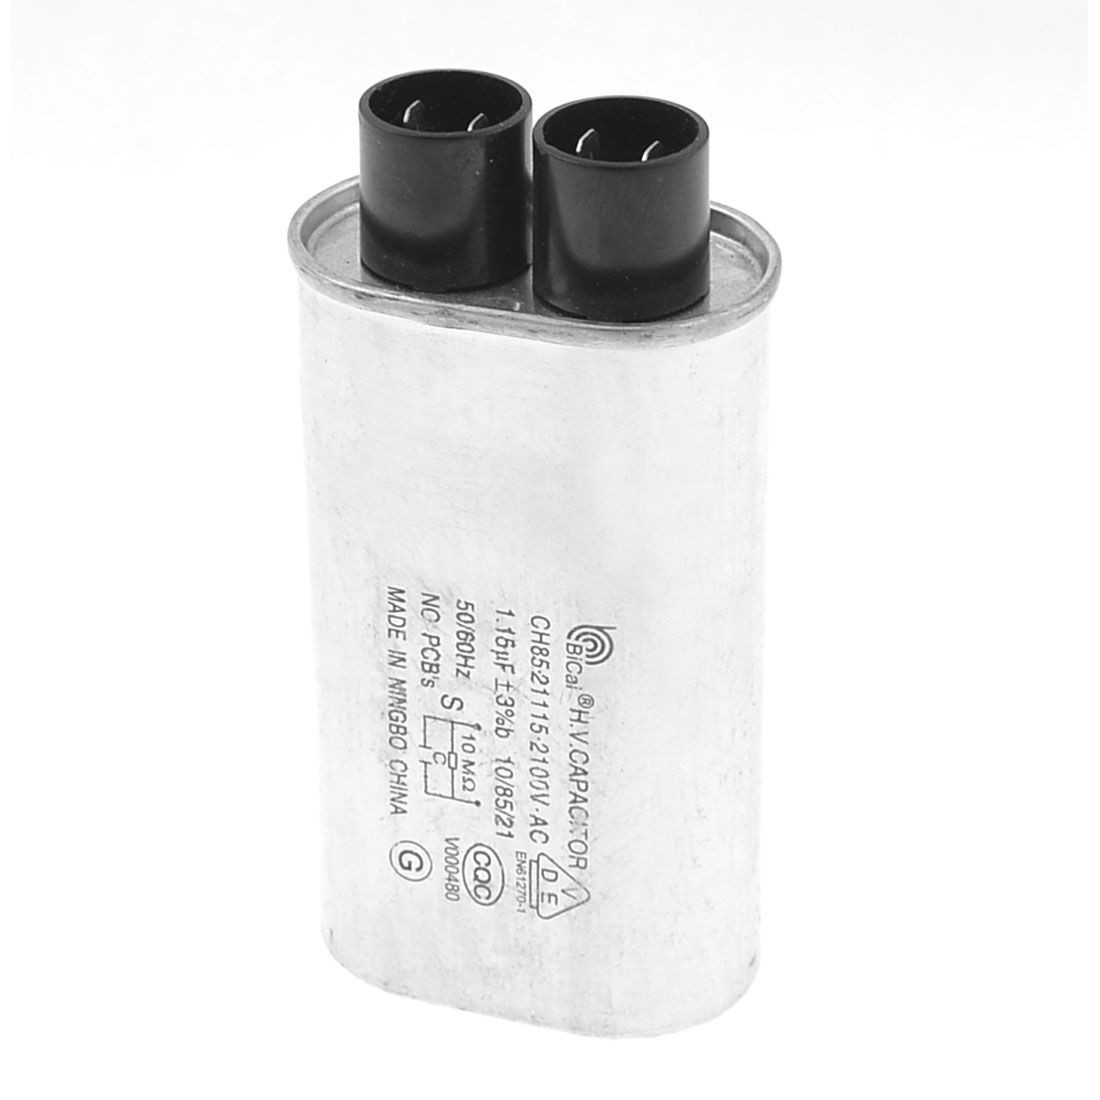 1.15uF 2100VAC 50/60Hz Microwave Oven High Voltage HV Capacitor